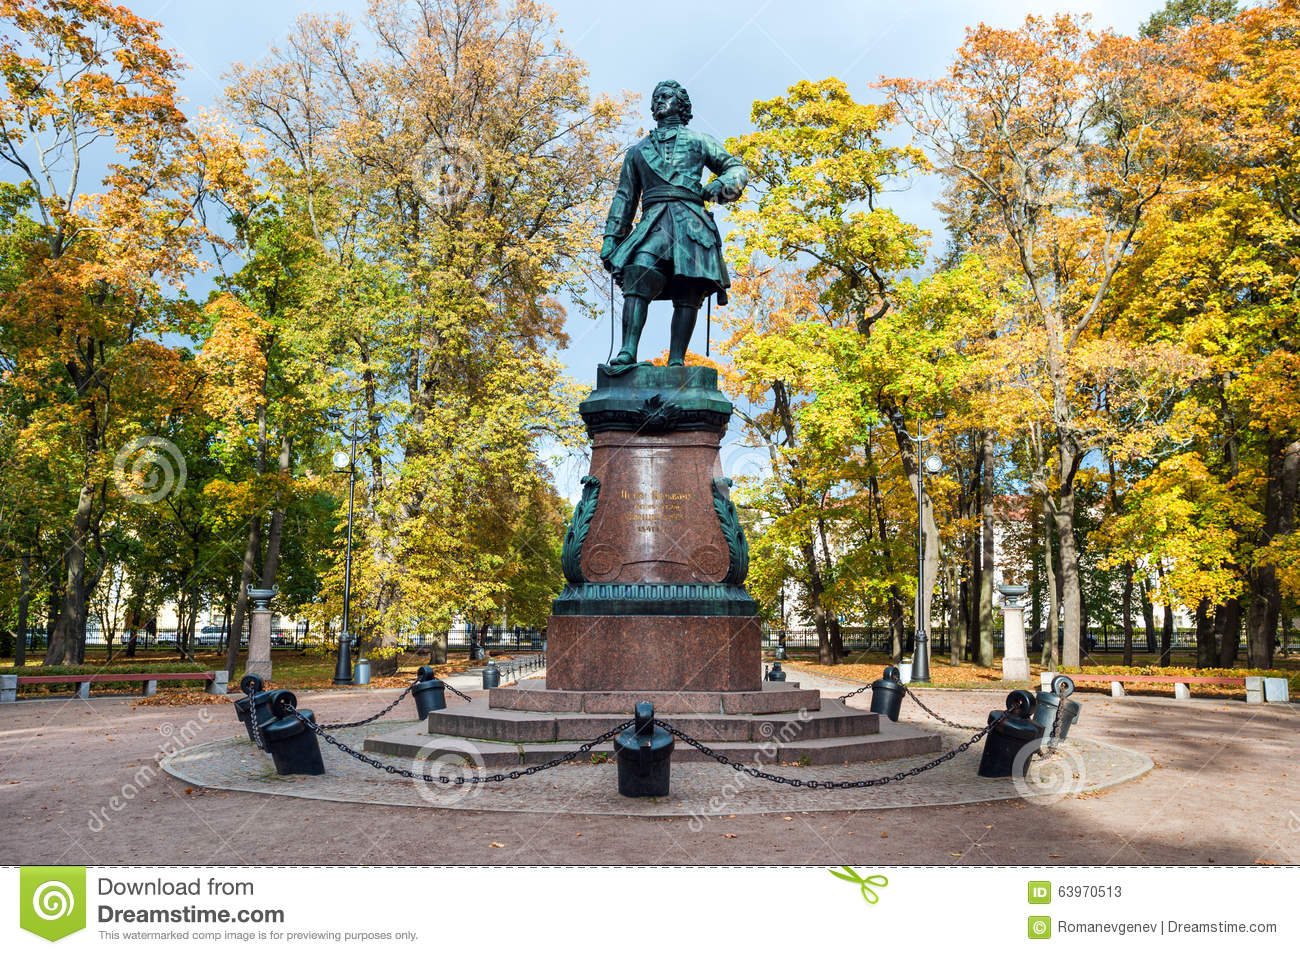 the life and times of peter the great Know about the family, life, personality, reign, military campaigns and death of the famous emperor of russia, peter the great, through these 10 facts.